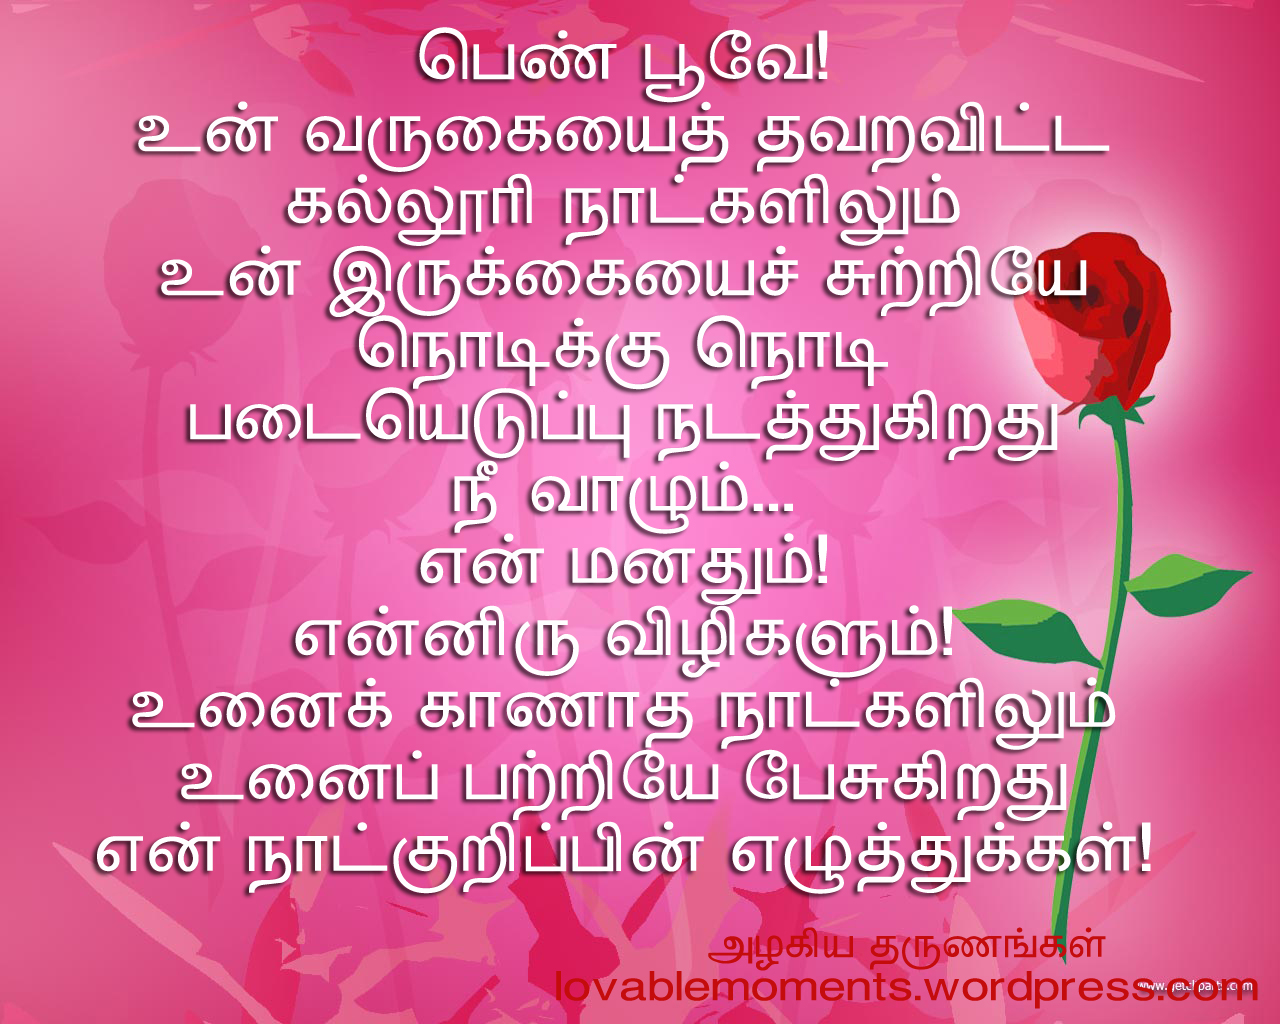 Tamil poems thecheapjerseys Image collections